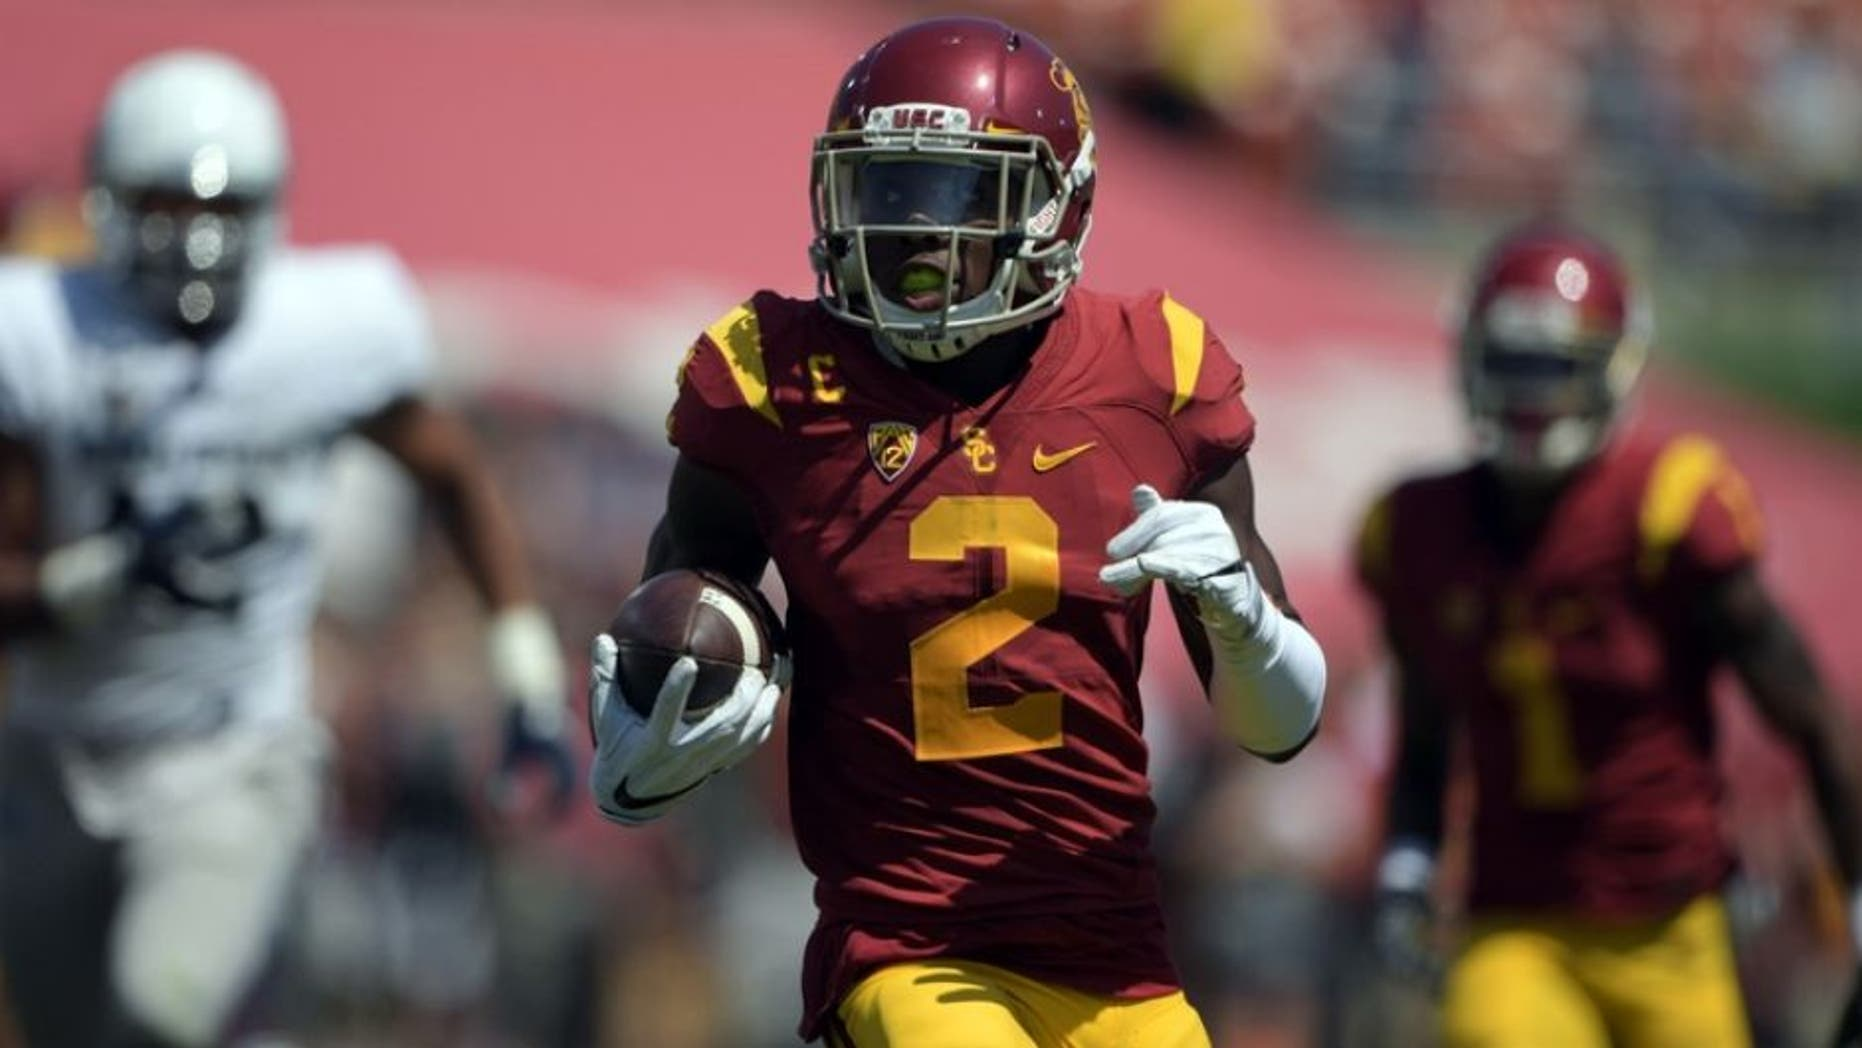 Sep 10, 2016; Los Angeles, CA, USA; USC Trojans defensive back Adoree Jackson (2) scores on a 79-yard punt return in the third quarter against the Utah State Aggies during a NCAA football game at Los Angeles Memorial Coliseum. Mandatory Credit: Kirby Lee-USA TODAY Sports